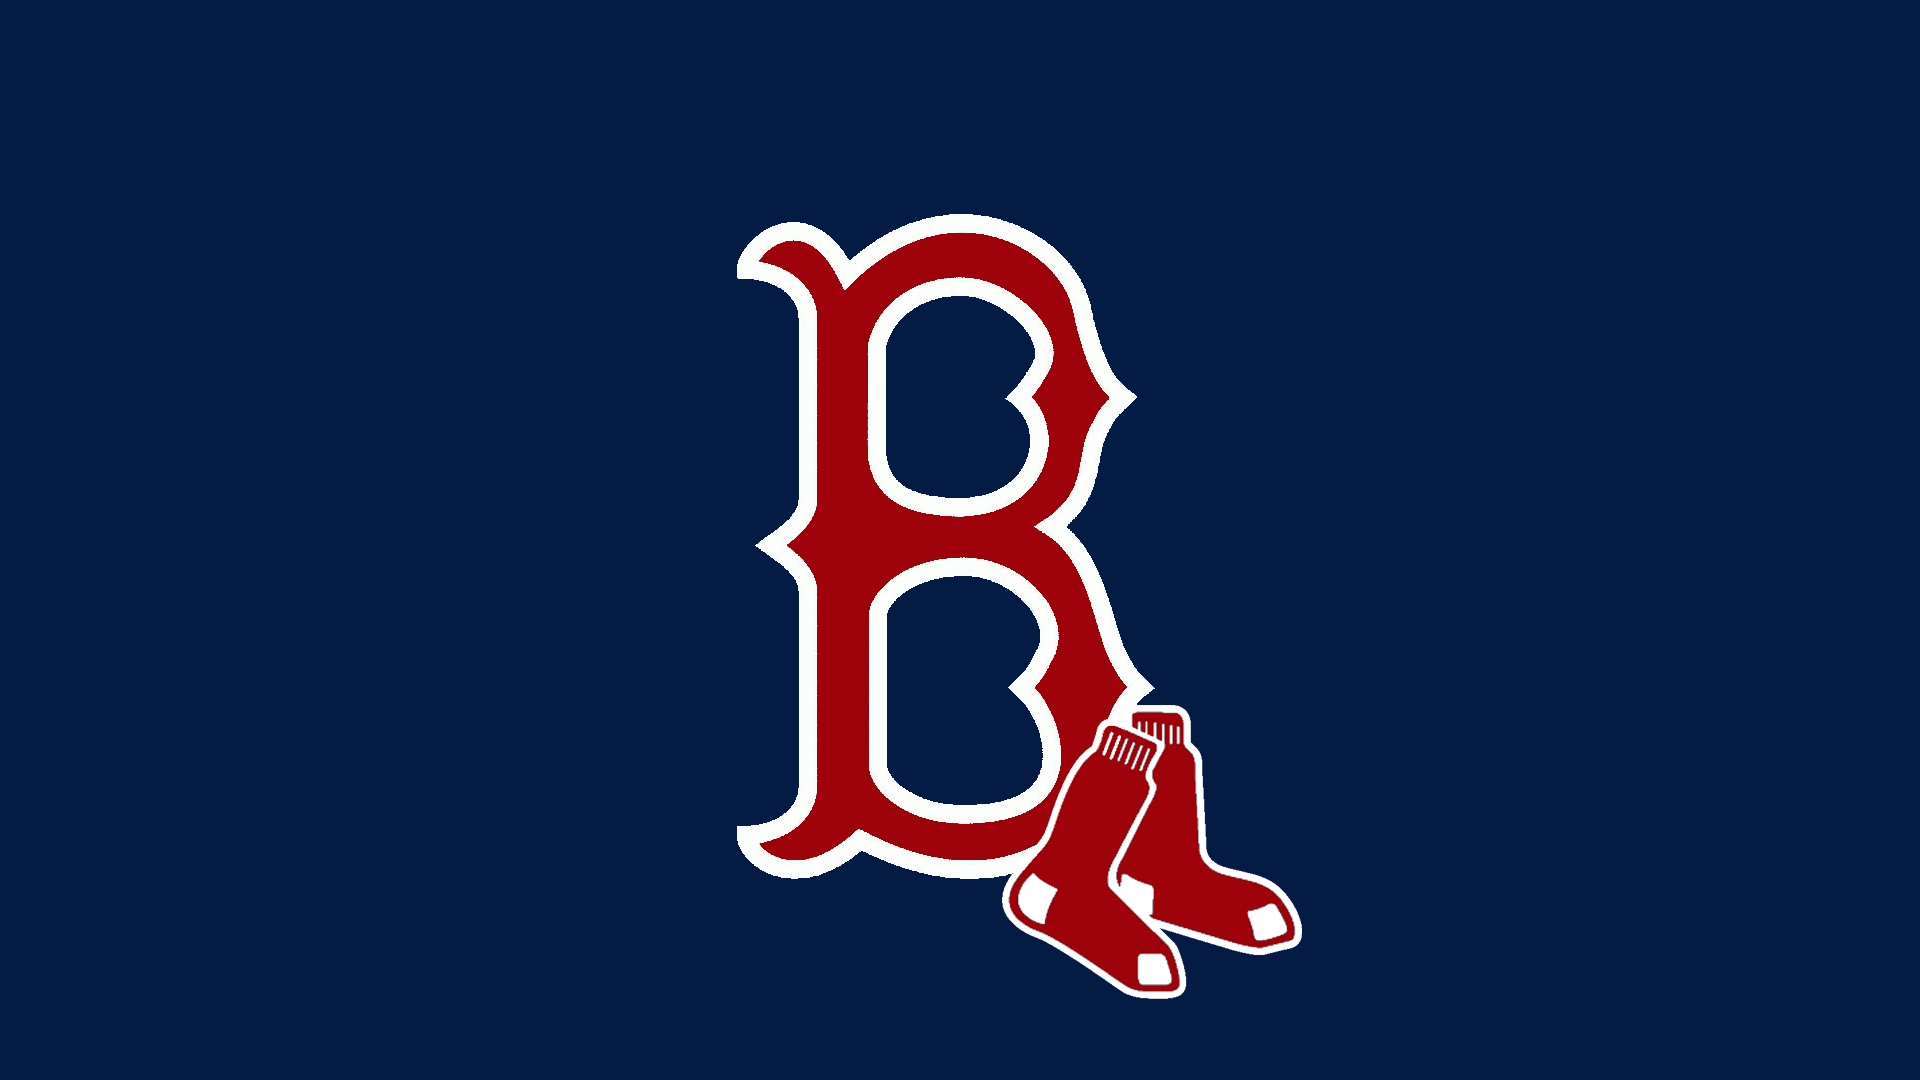 Red Sox Wallpaper 1920x1080   Boston Red Sox Wallpaper 8502641 1920x1080